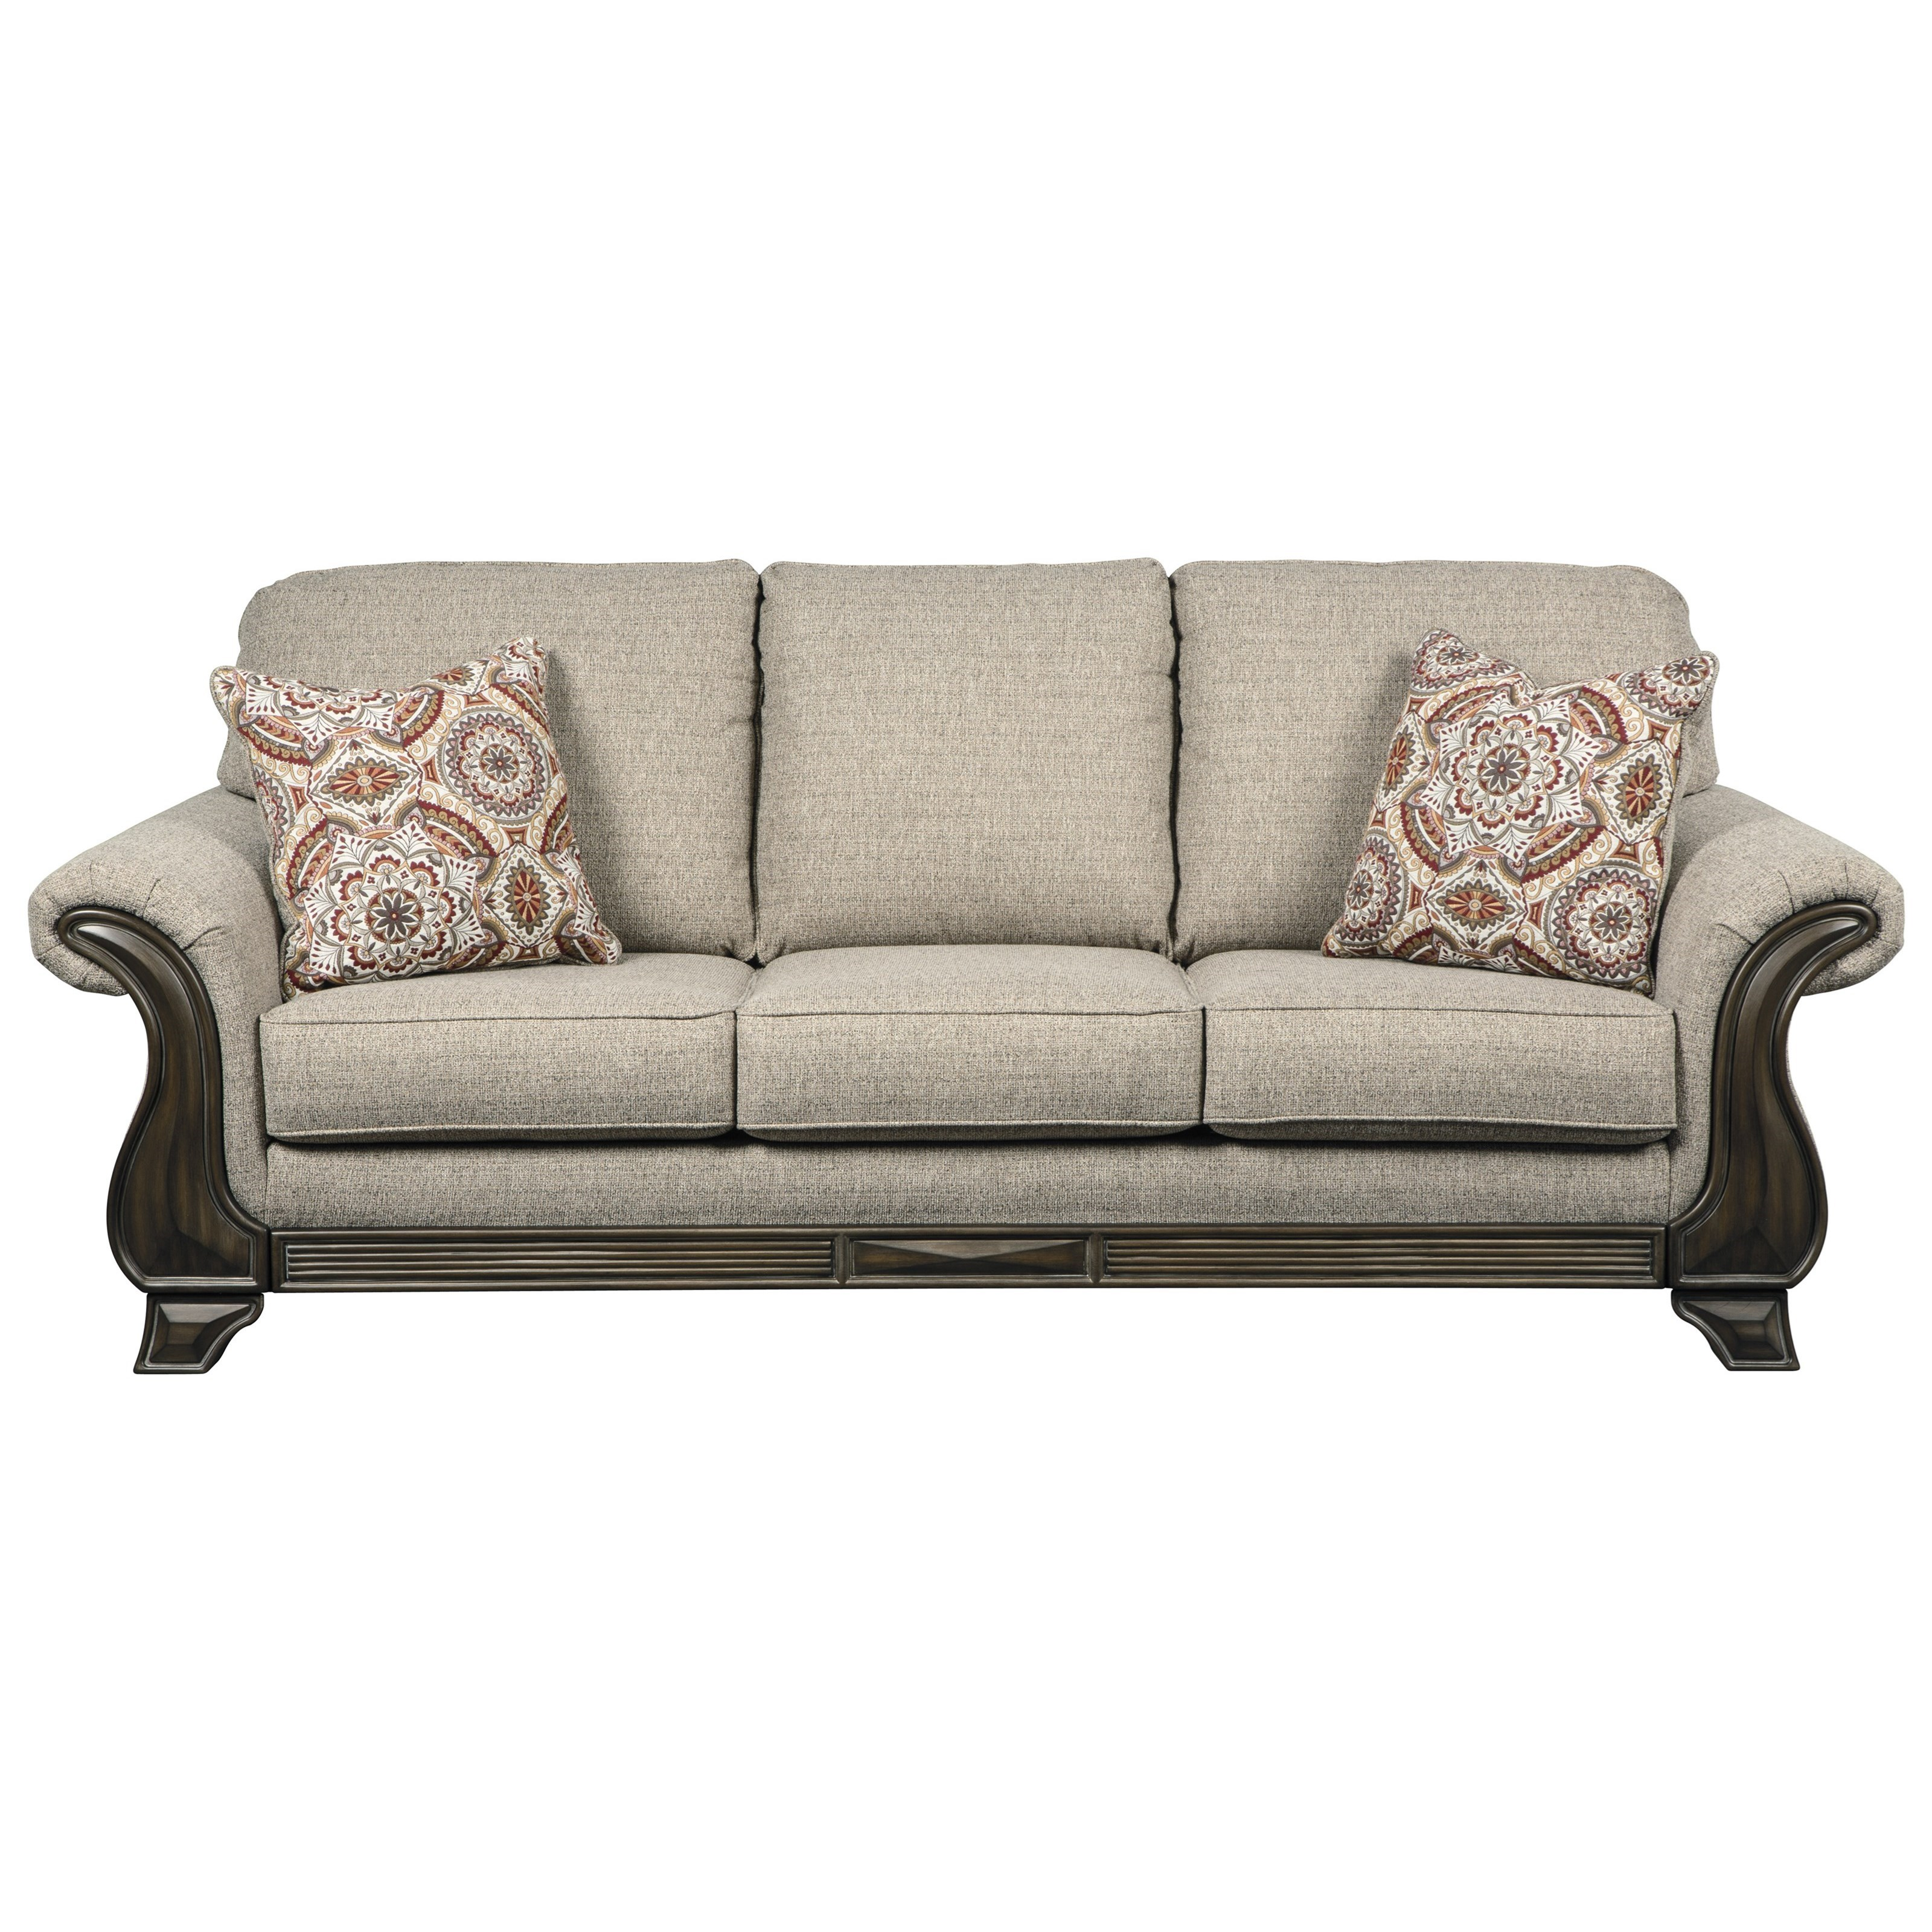 Benchcraft by Ashley Claremorris Sofa with Traditional Style | Royal ...